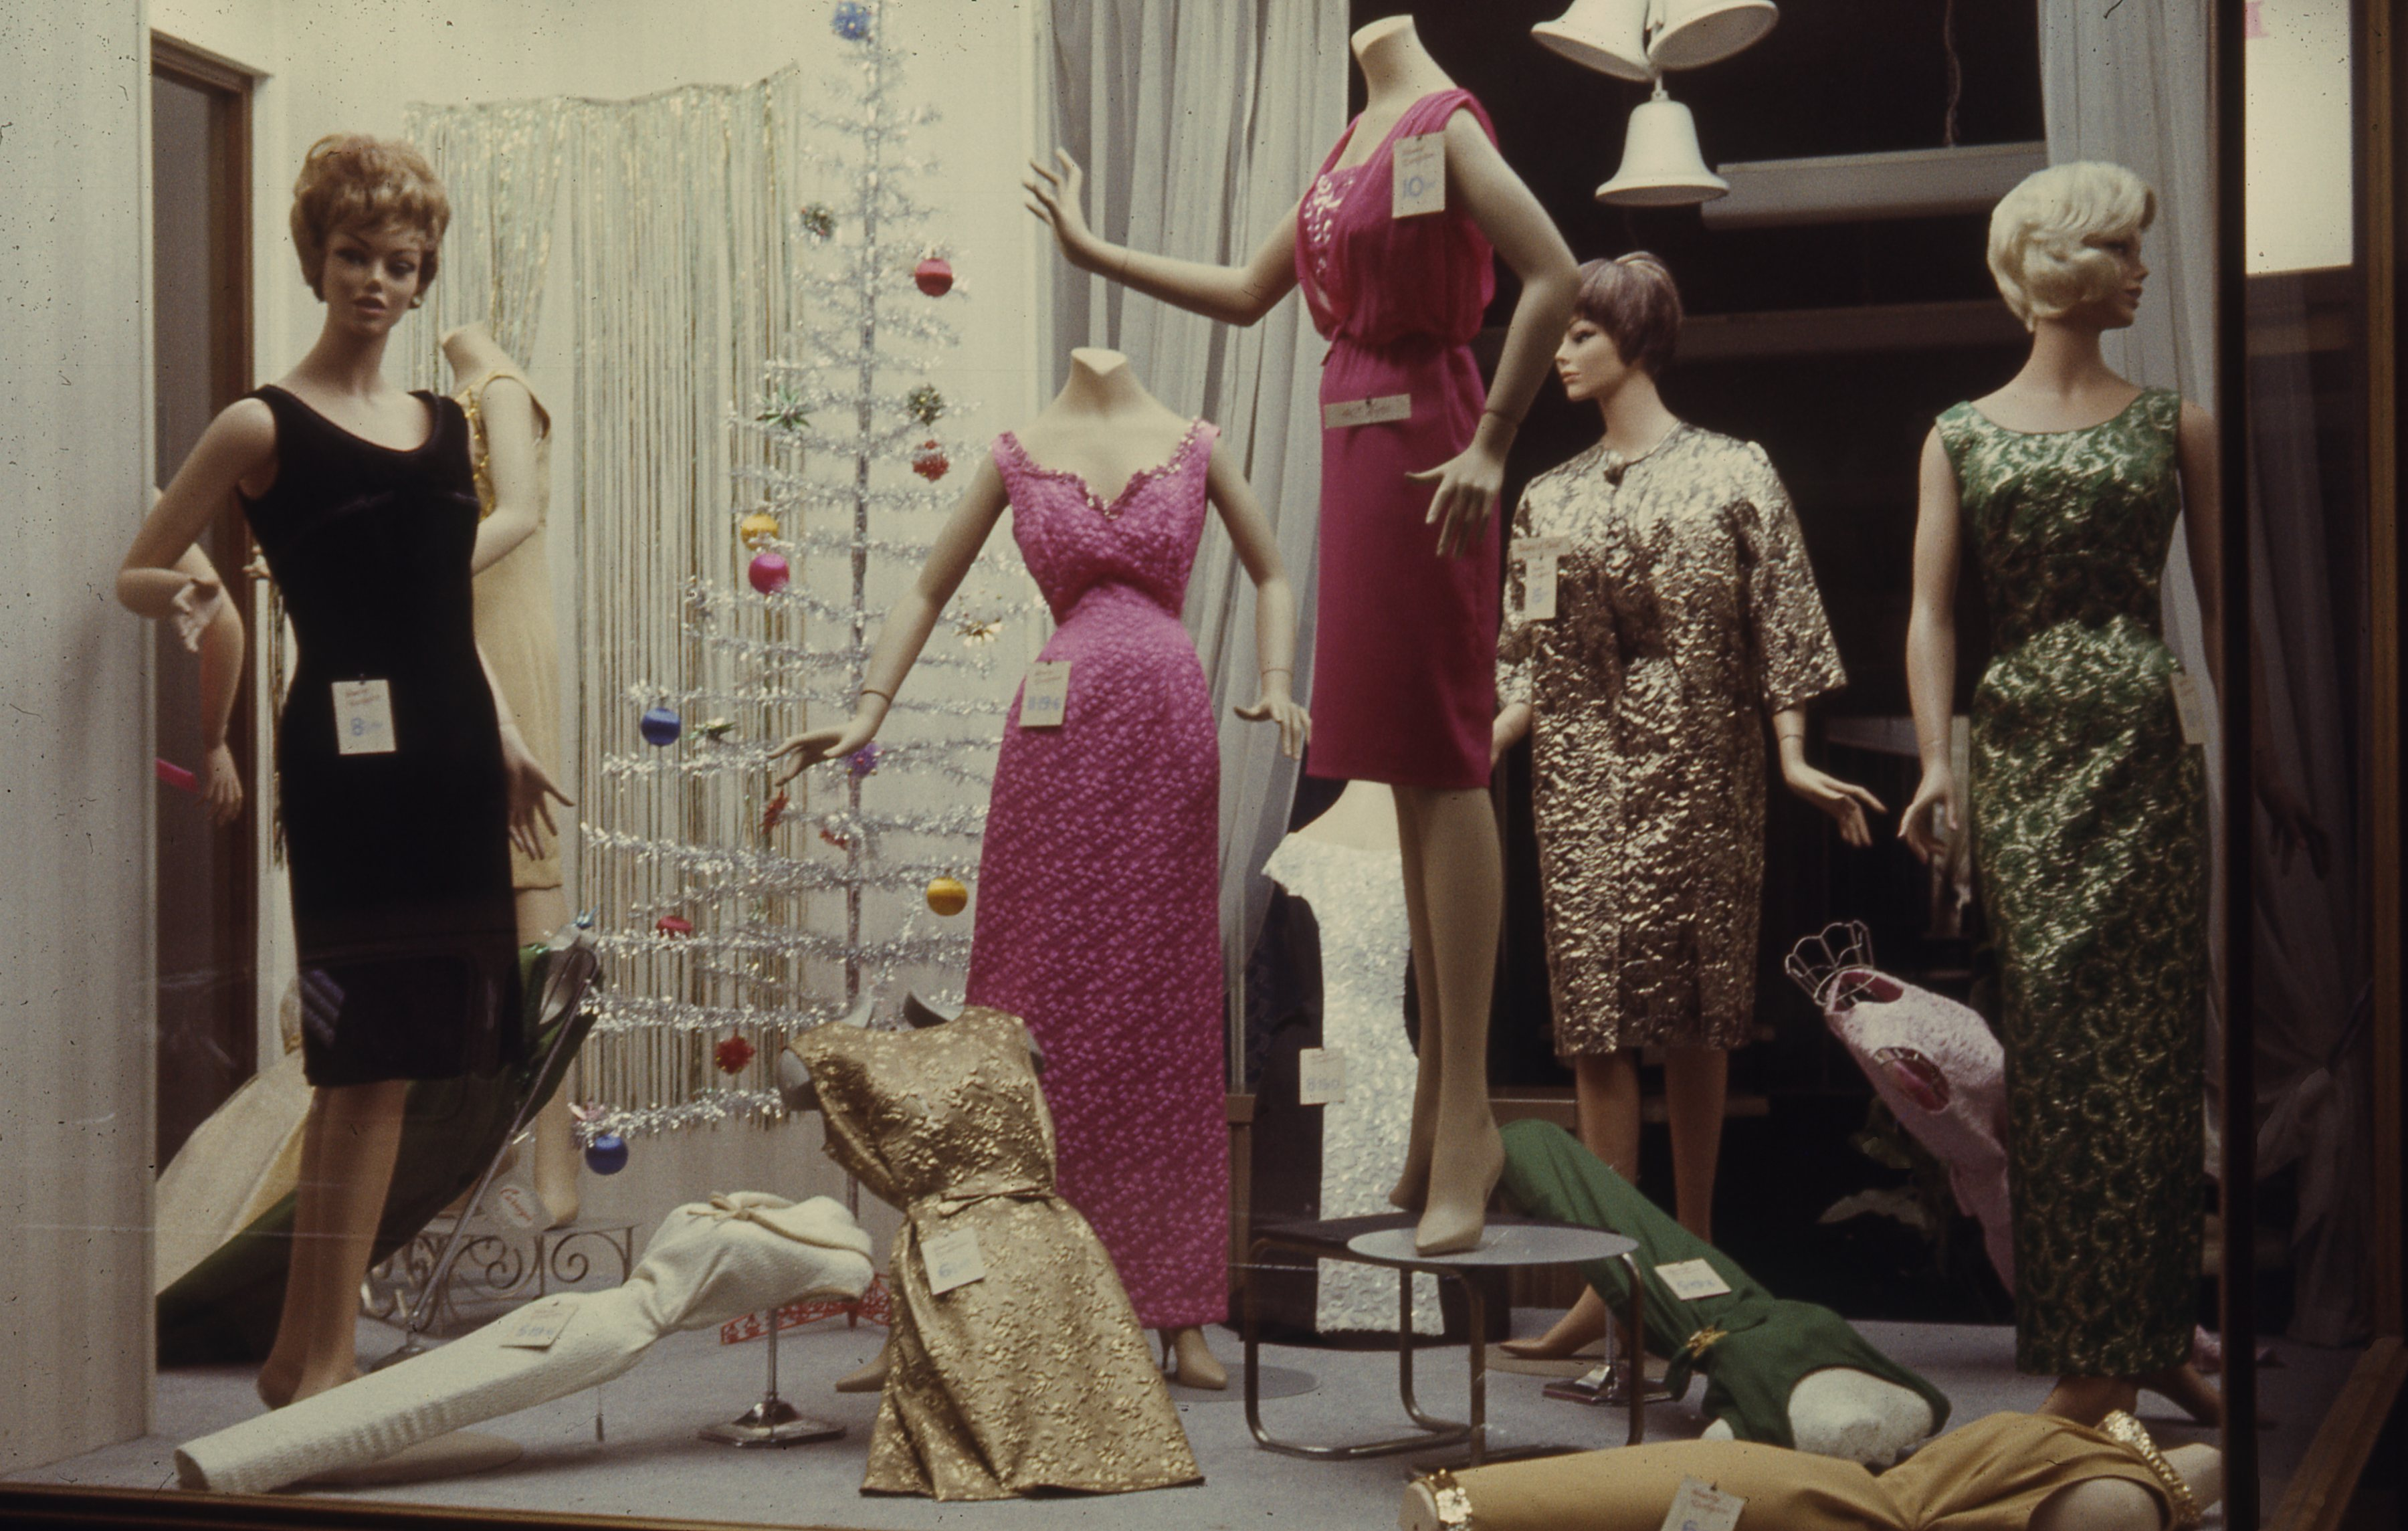 It shows the gift display in a ladies fashion shop on Saville Row, Newcastle upon Tyne. This is a 35mm slide. It was taken in 1966.